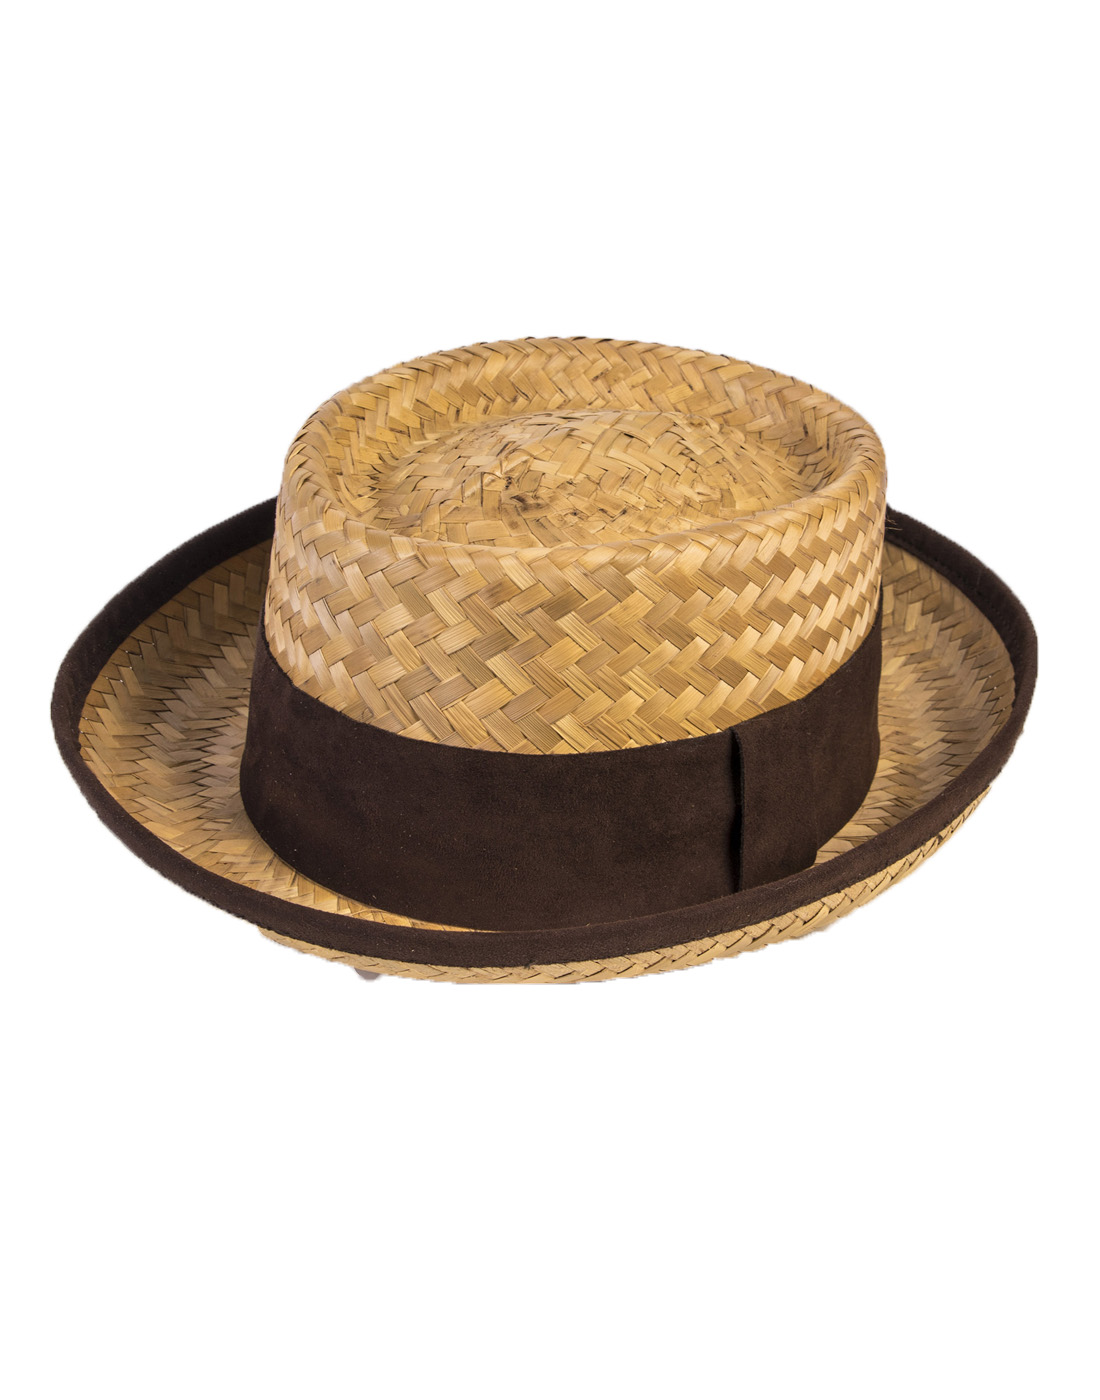 Details about Straw Mens Adult Costume Skimmer Boating Quartet Hat Accessory a40b2505d7b